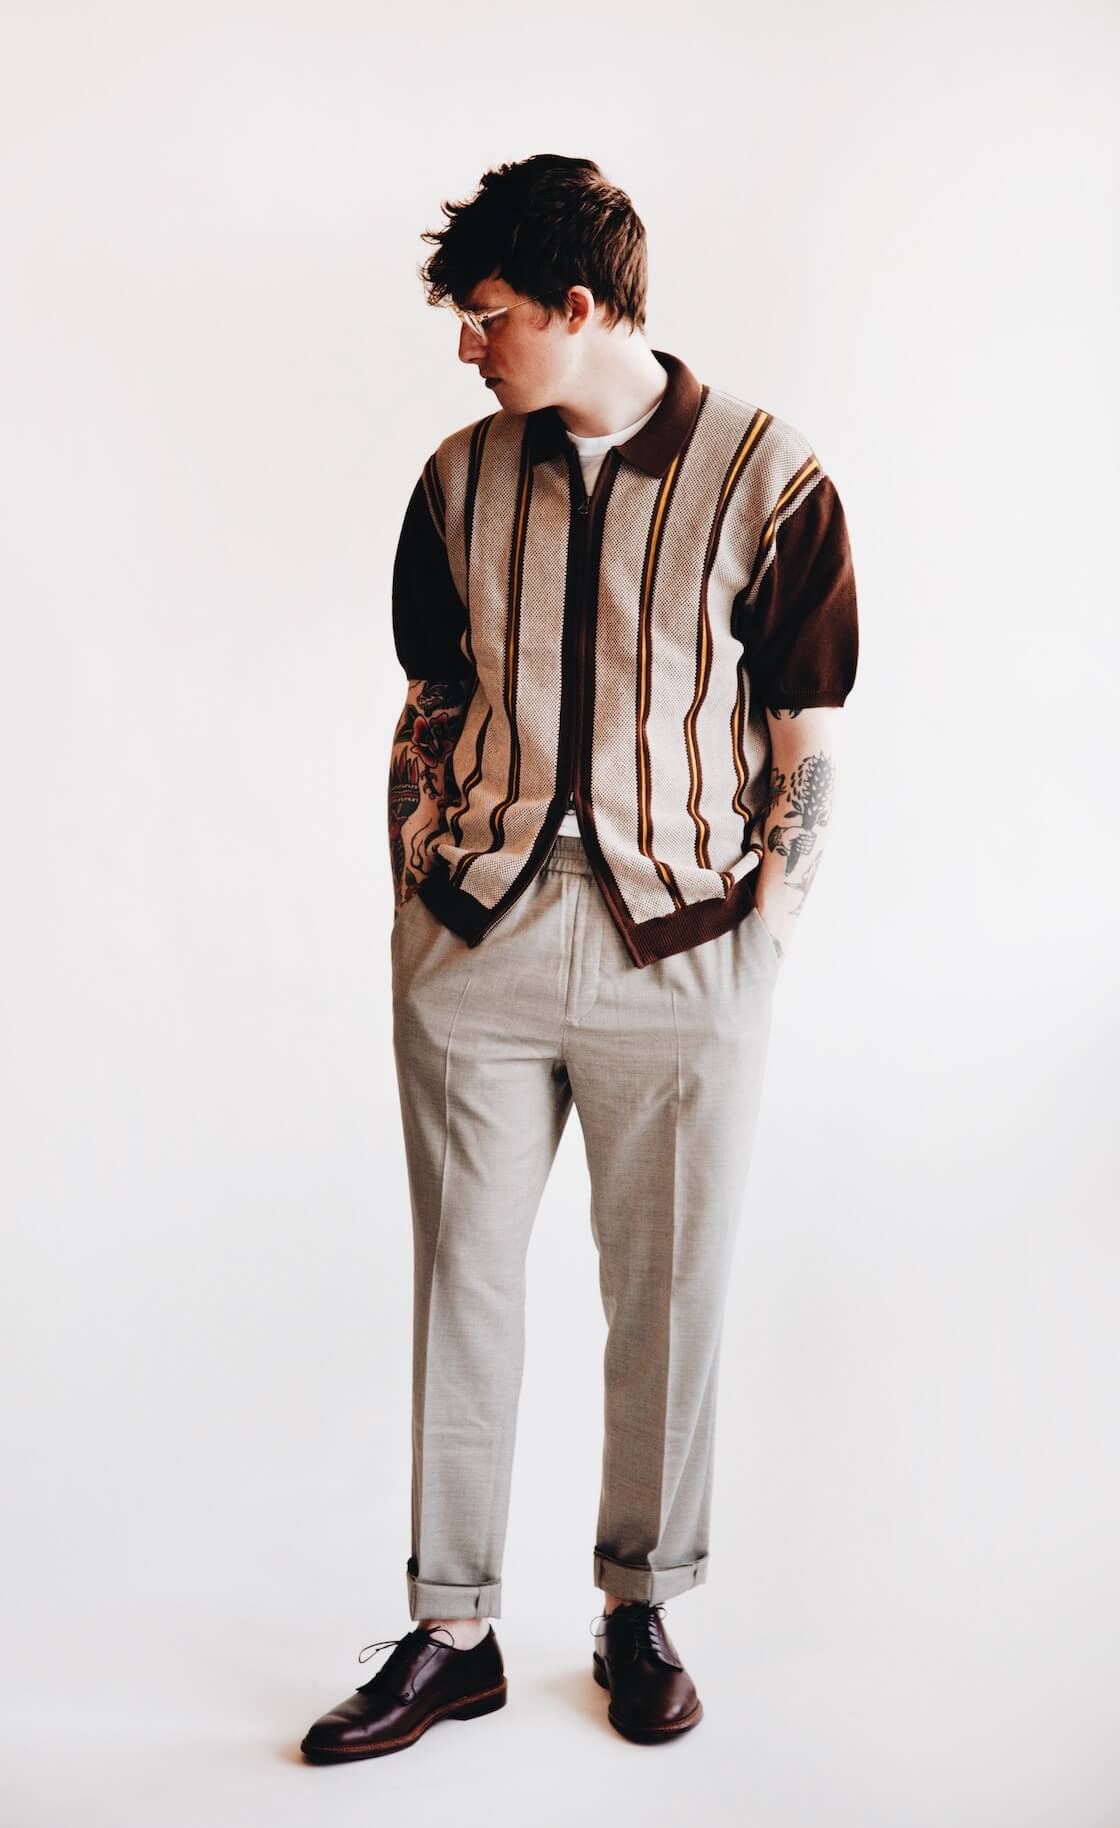 beams plus short sleeve zip knit, harmony paris paolo trouser and alden bluchers on body